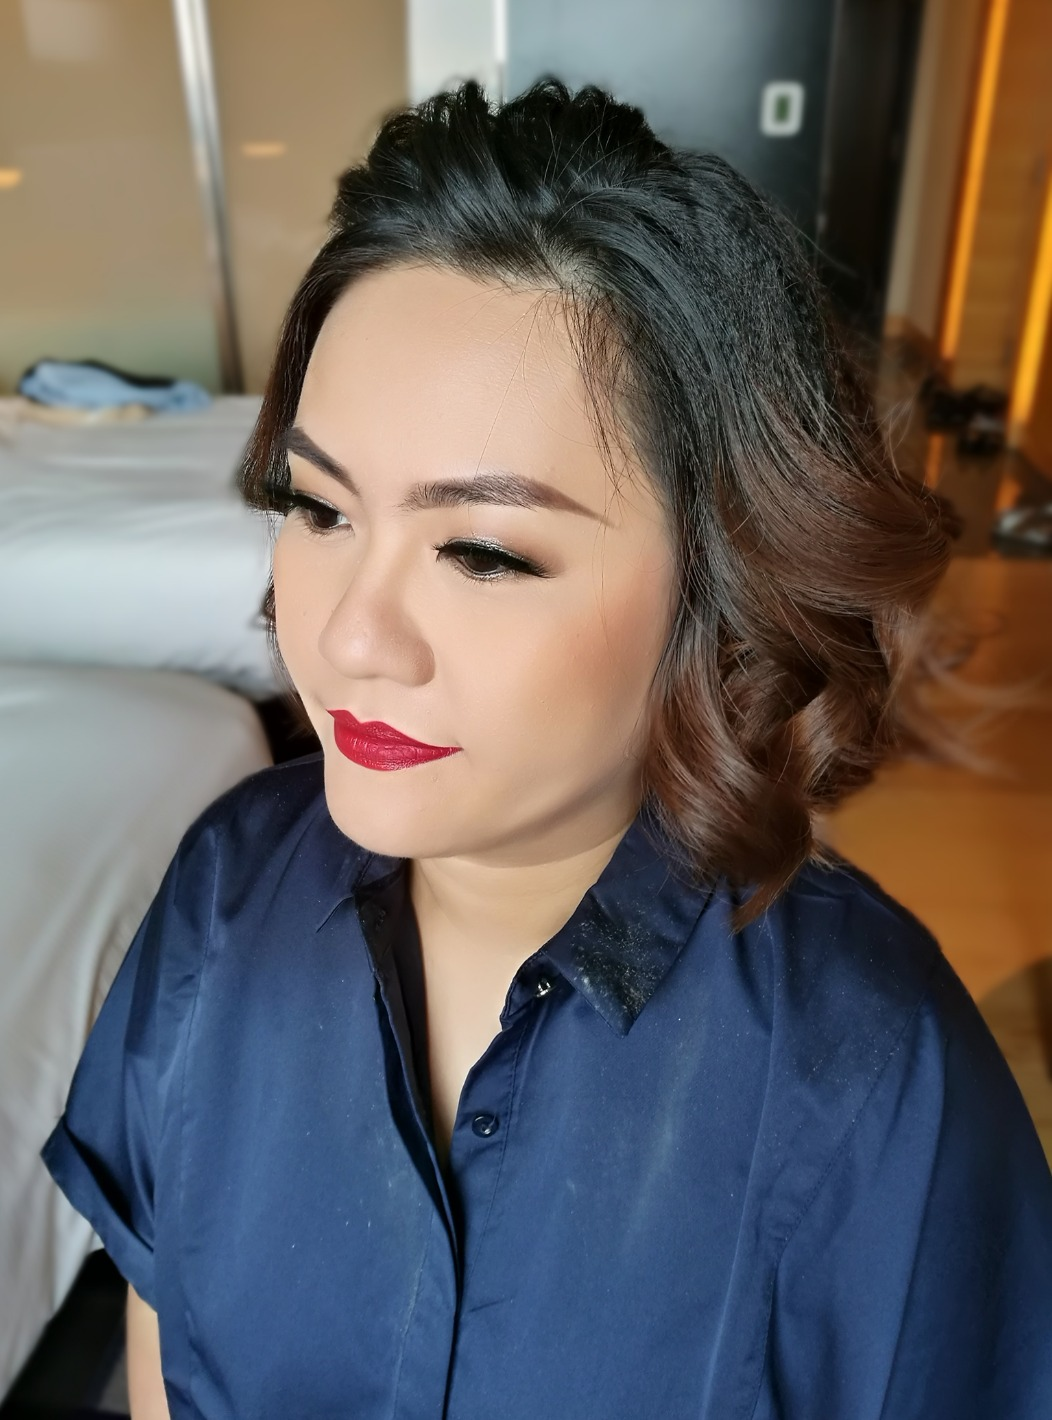 Annual Dinner Makeup Service in KL